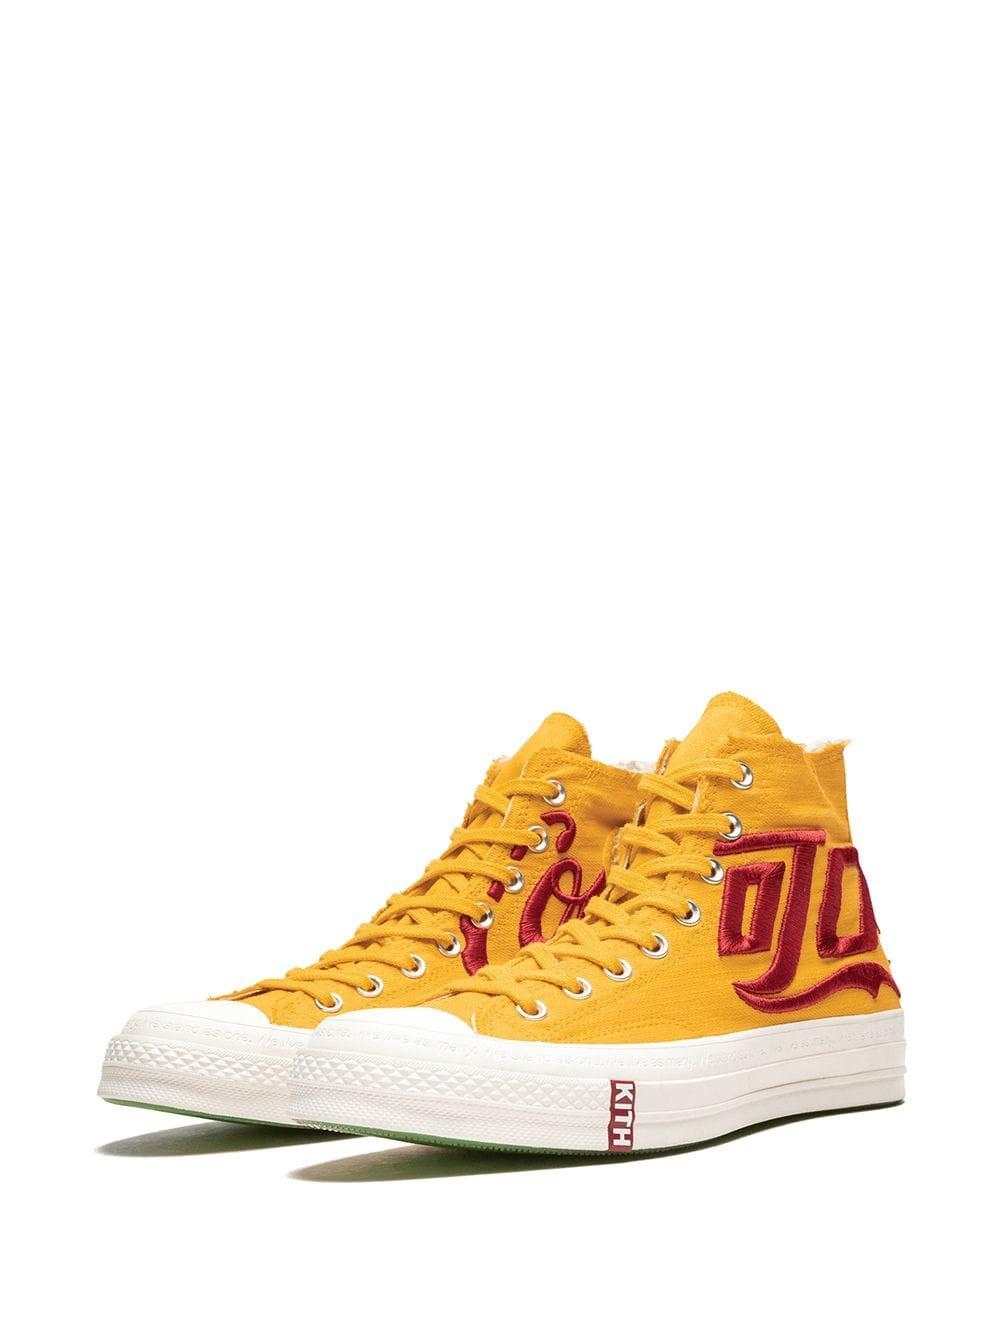 2b7eced6b16c Converse - Yellow Kith X Coca Cola 1970 All Star High-top Sneakers for Men.  View fullscreen